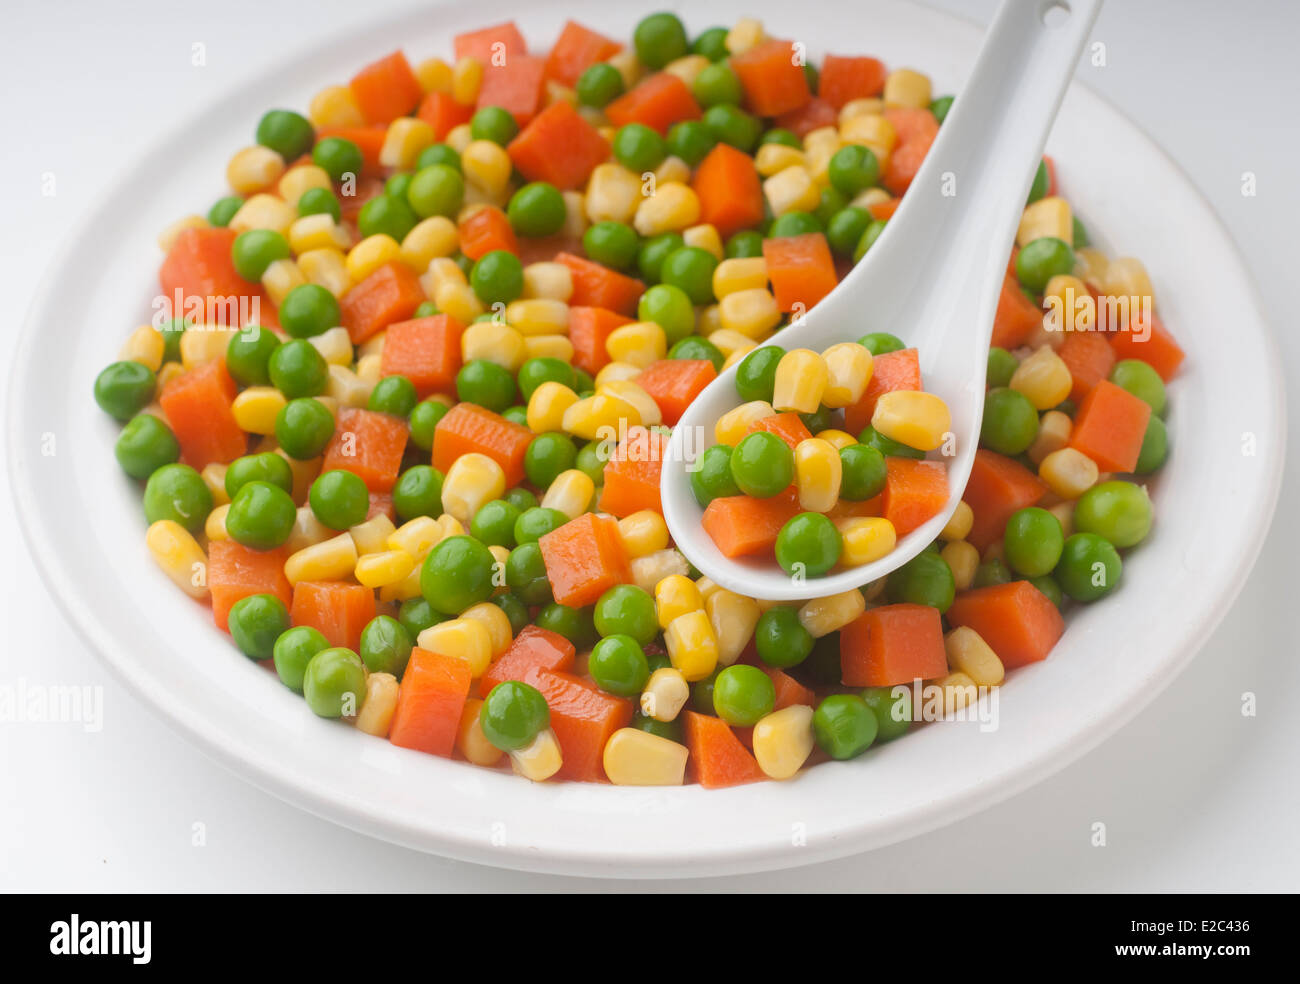 healthy and fresh vegetables prepared salad - Stock Image